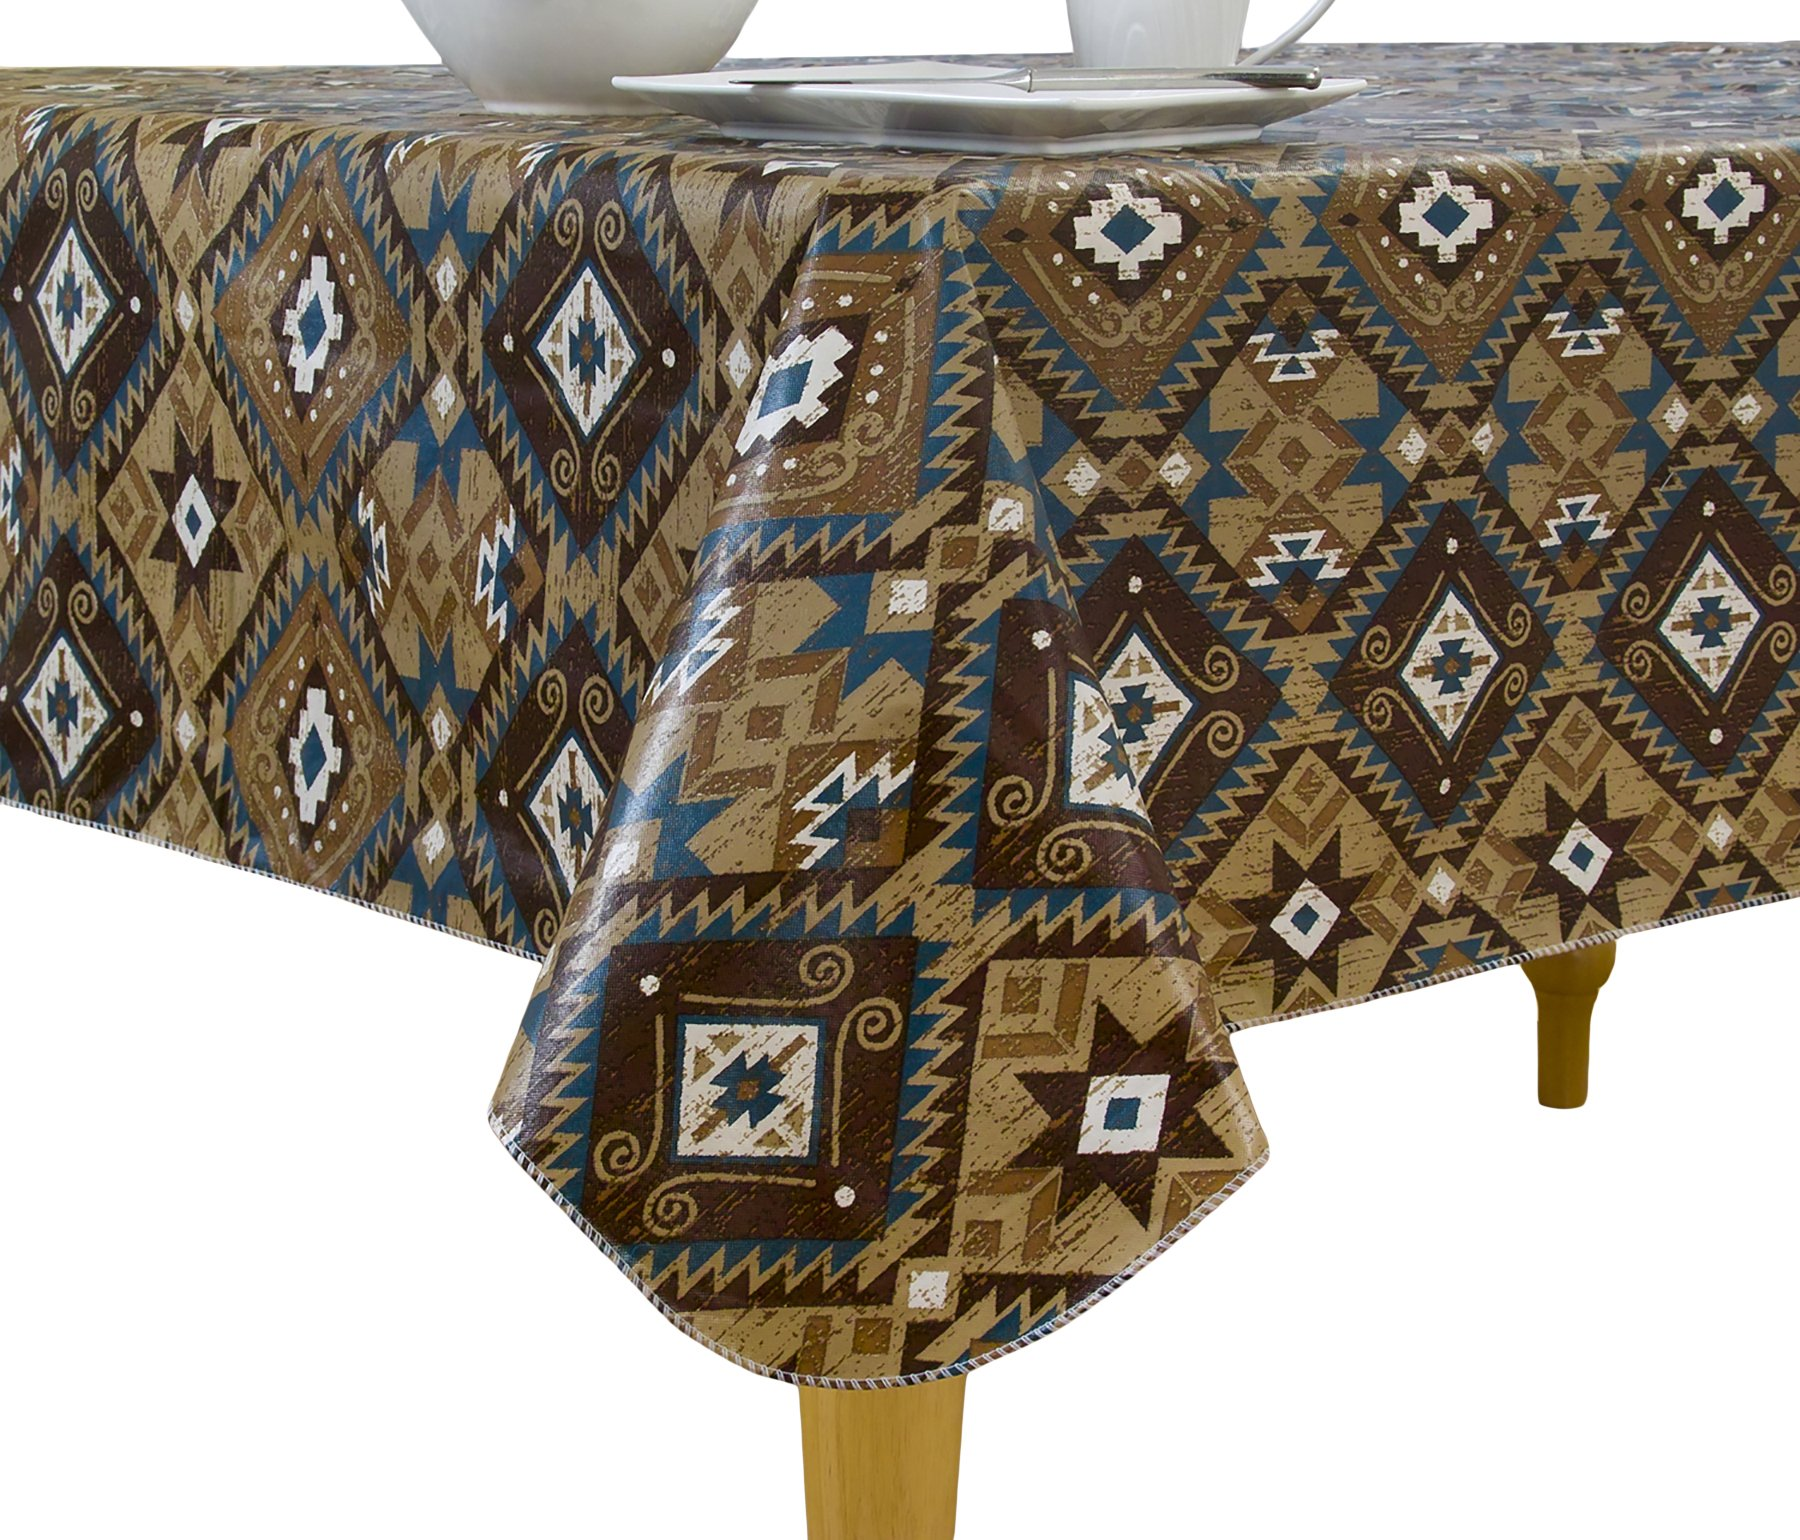 Elrene Home Fashions Vinyl Tablecloth with Polyester Flannel Backing Canyon Road Santa Fe Style Easy Care Spillproof, 52''x70'', Brown